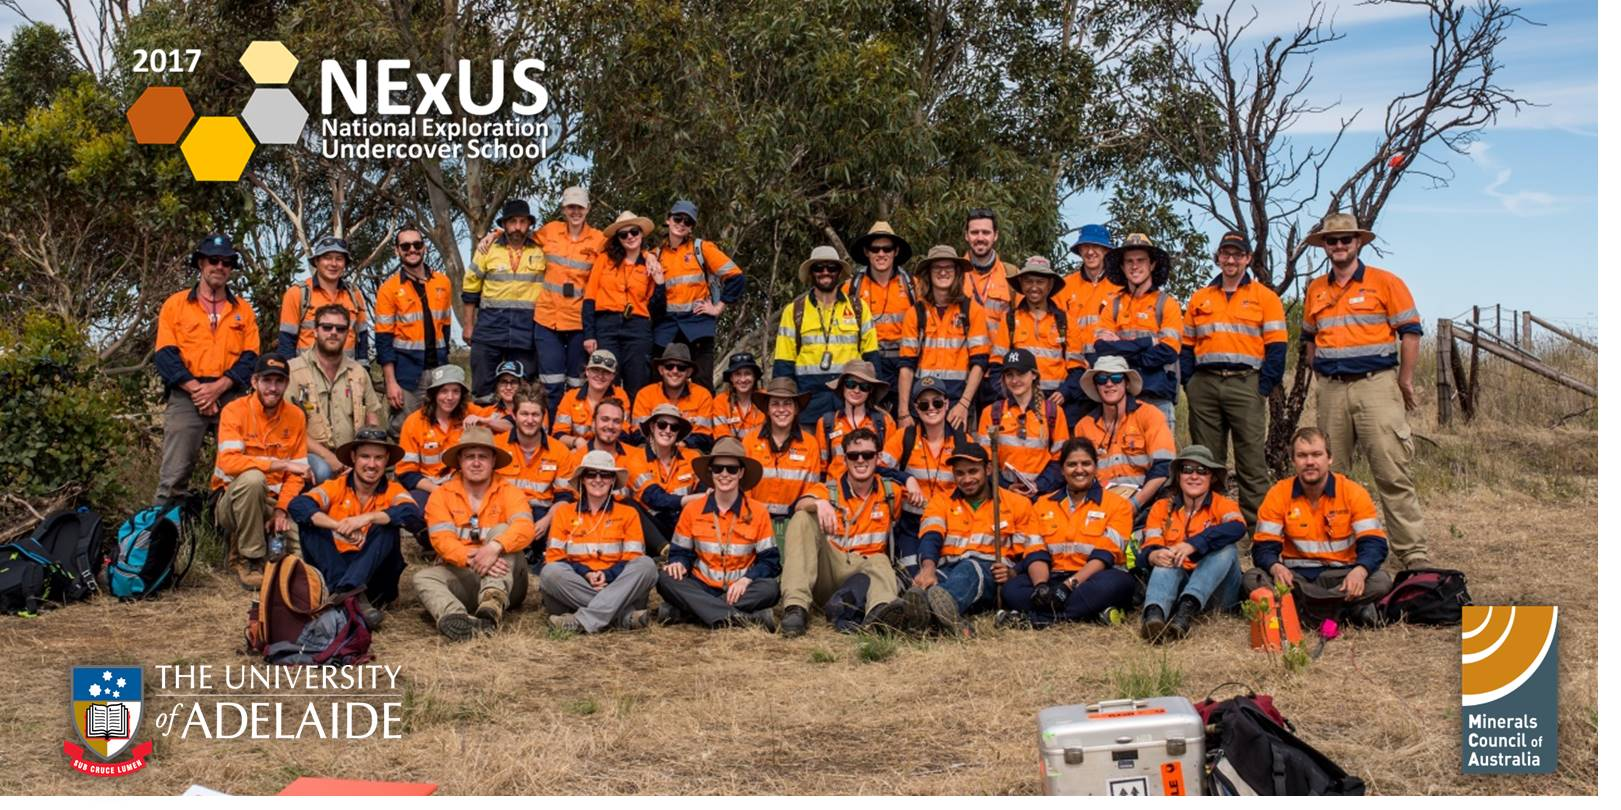 NExUS 2017 group on fieldwork in the Adelaide Hills